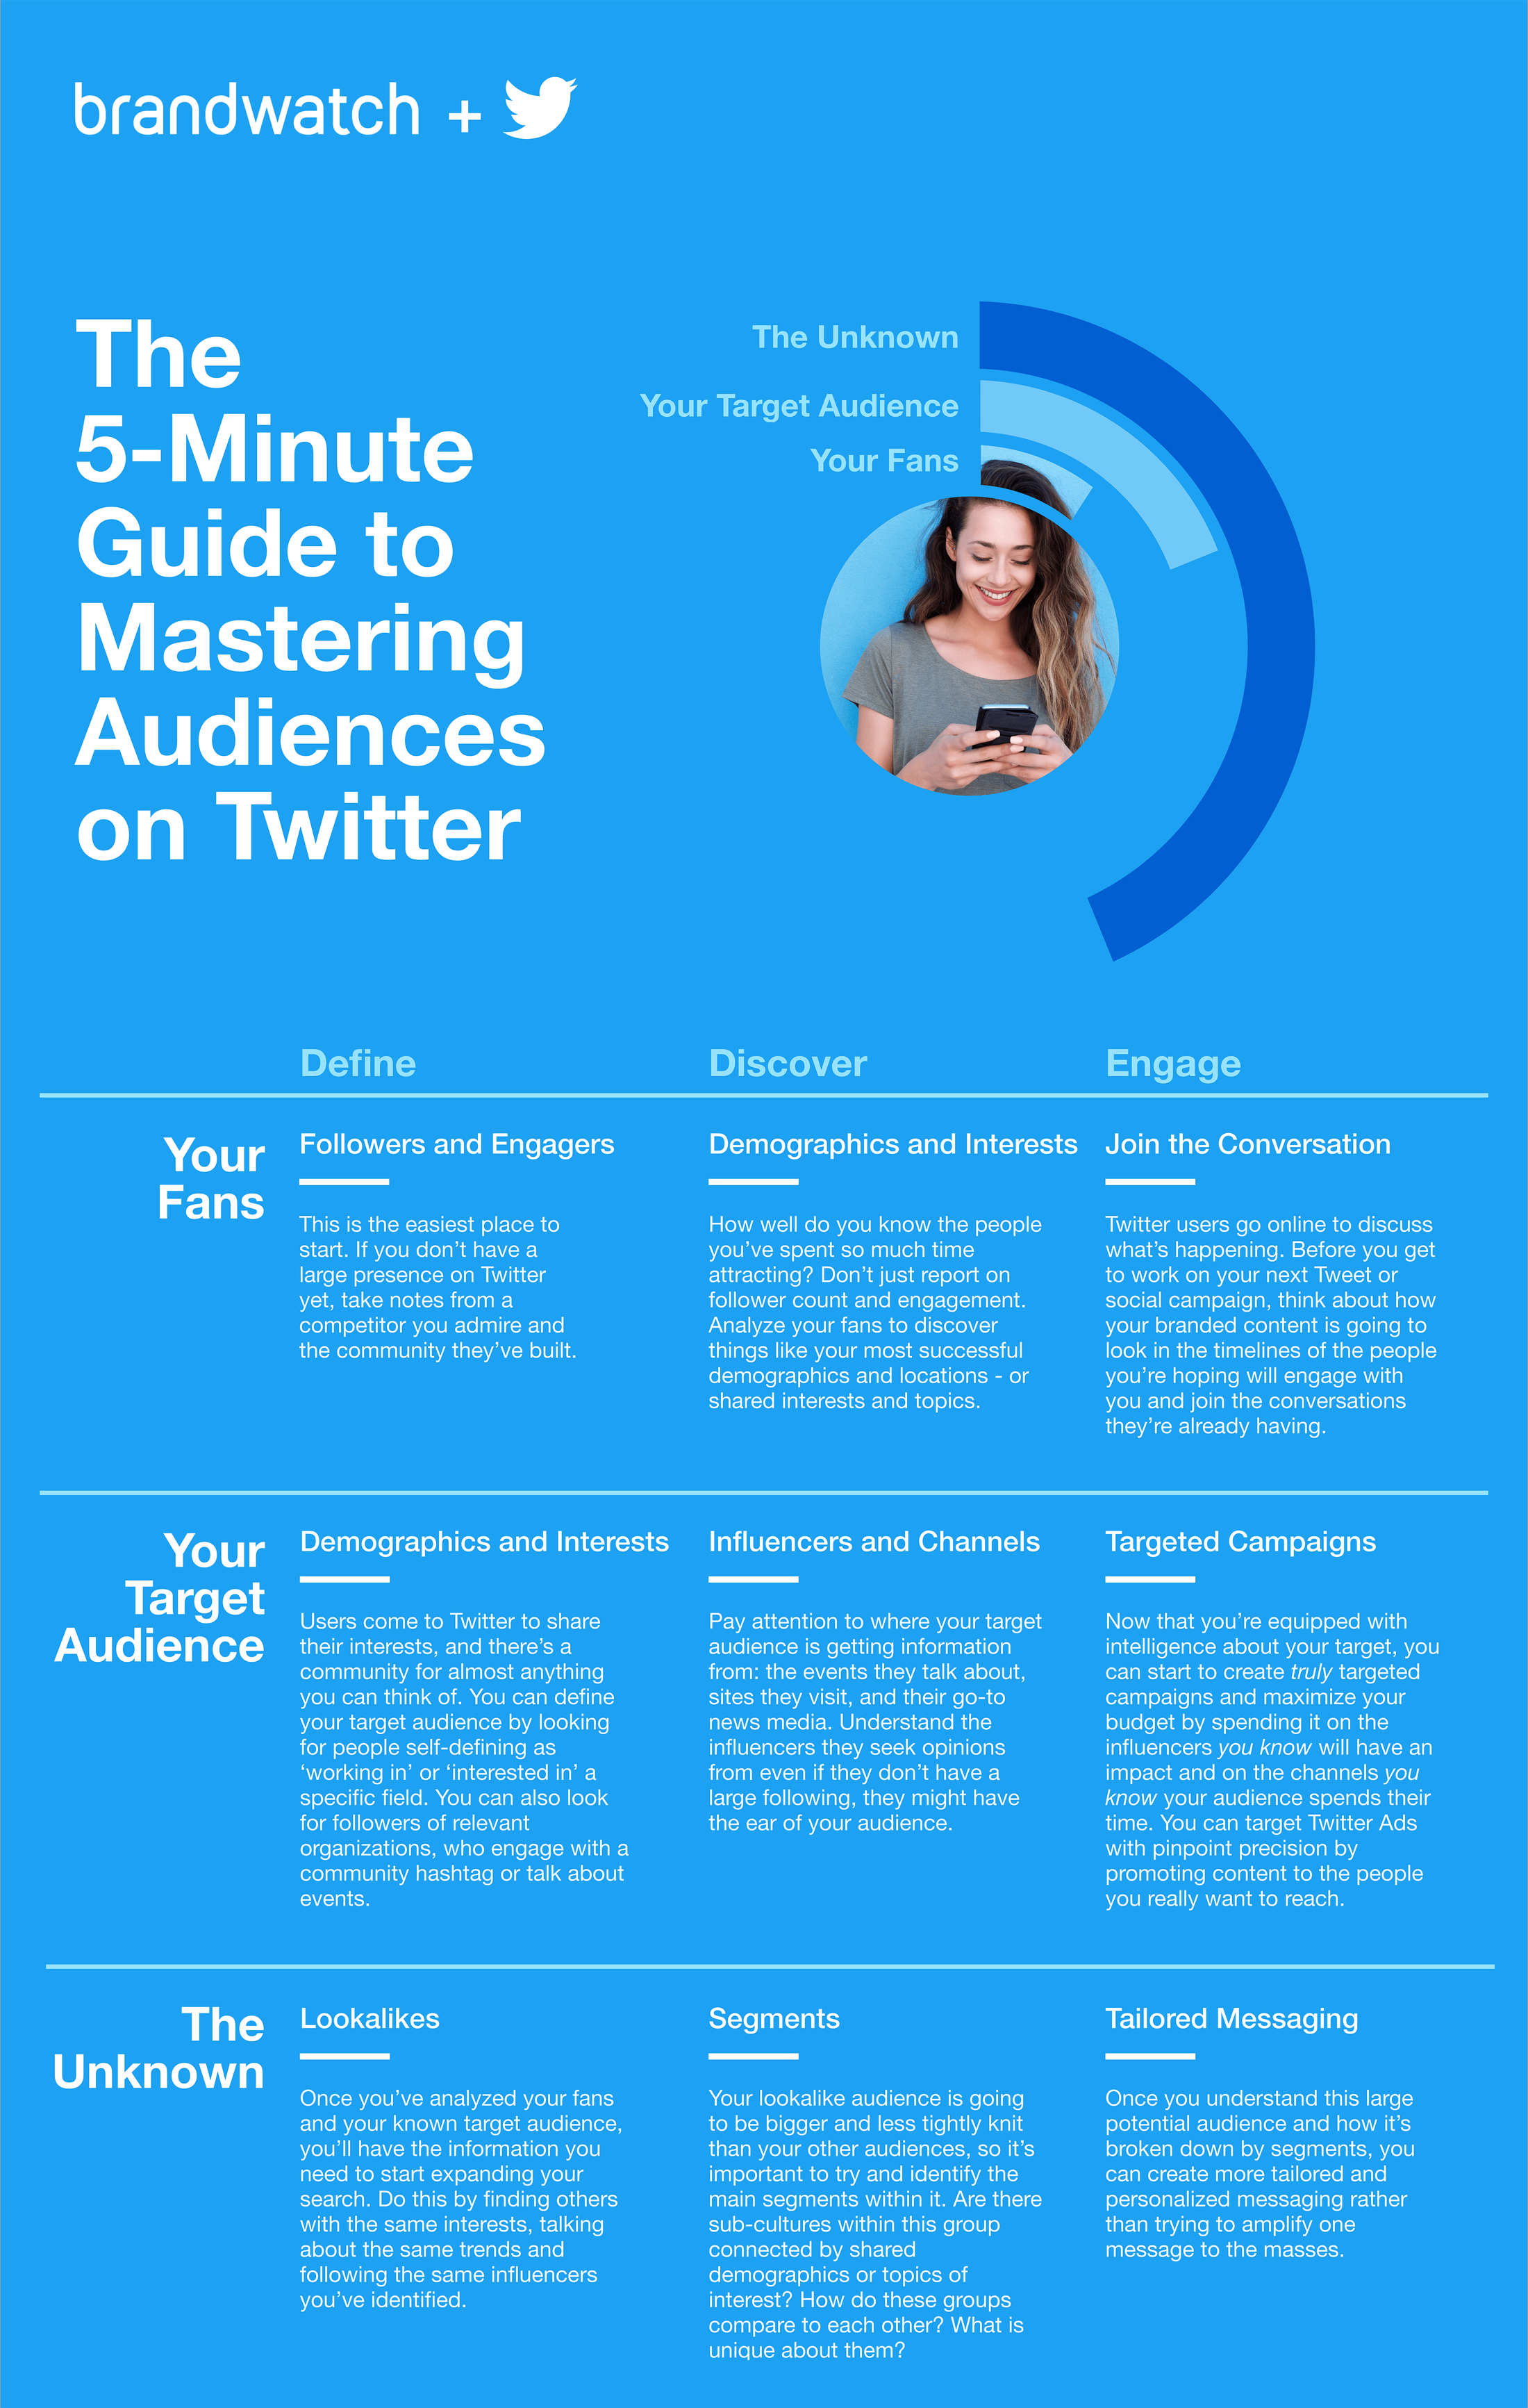 Listing outlines some key tips to develop Twitter audiences